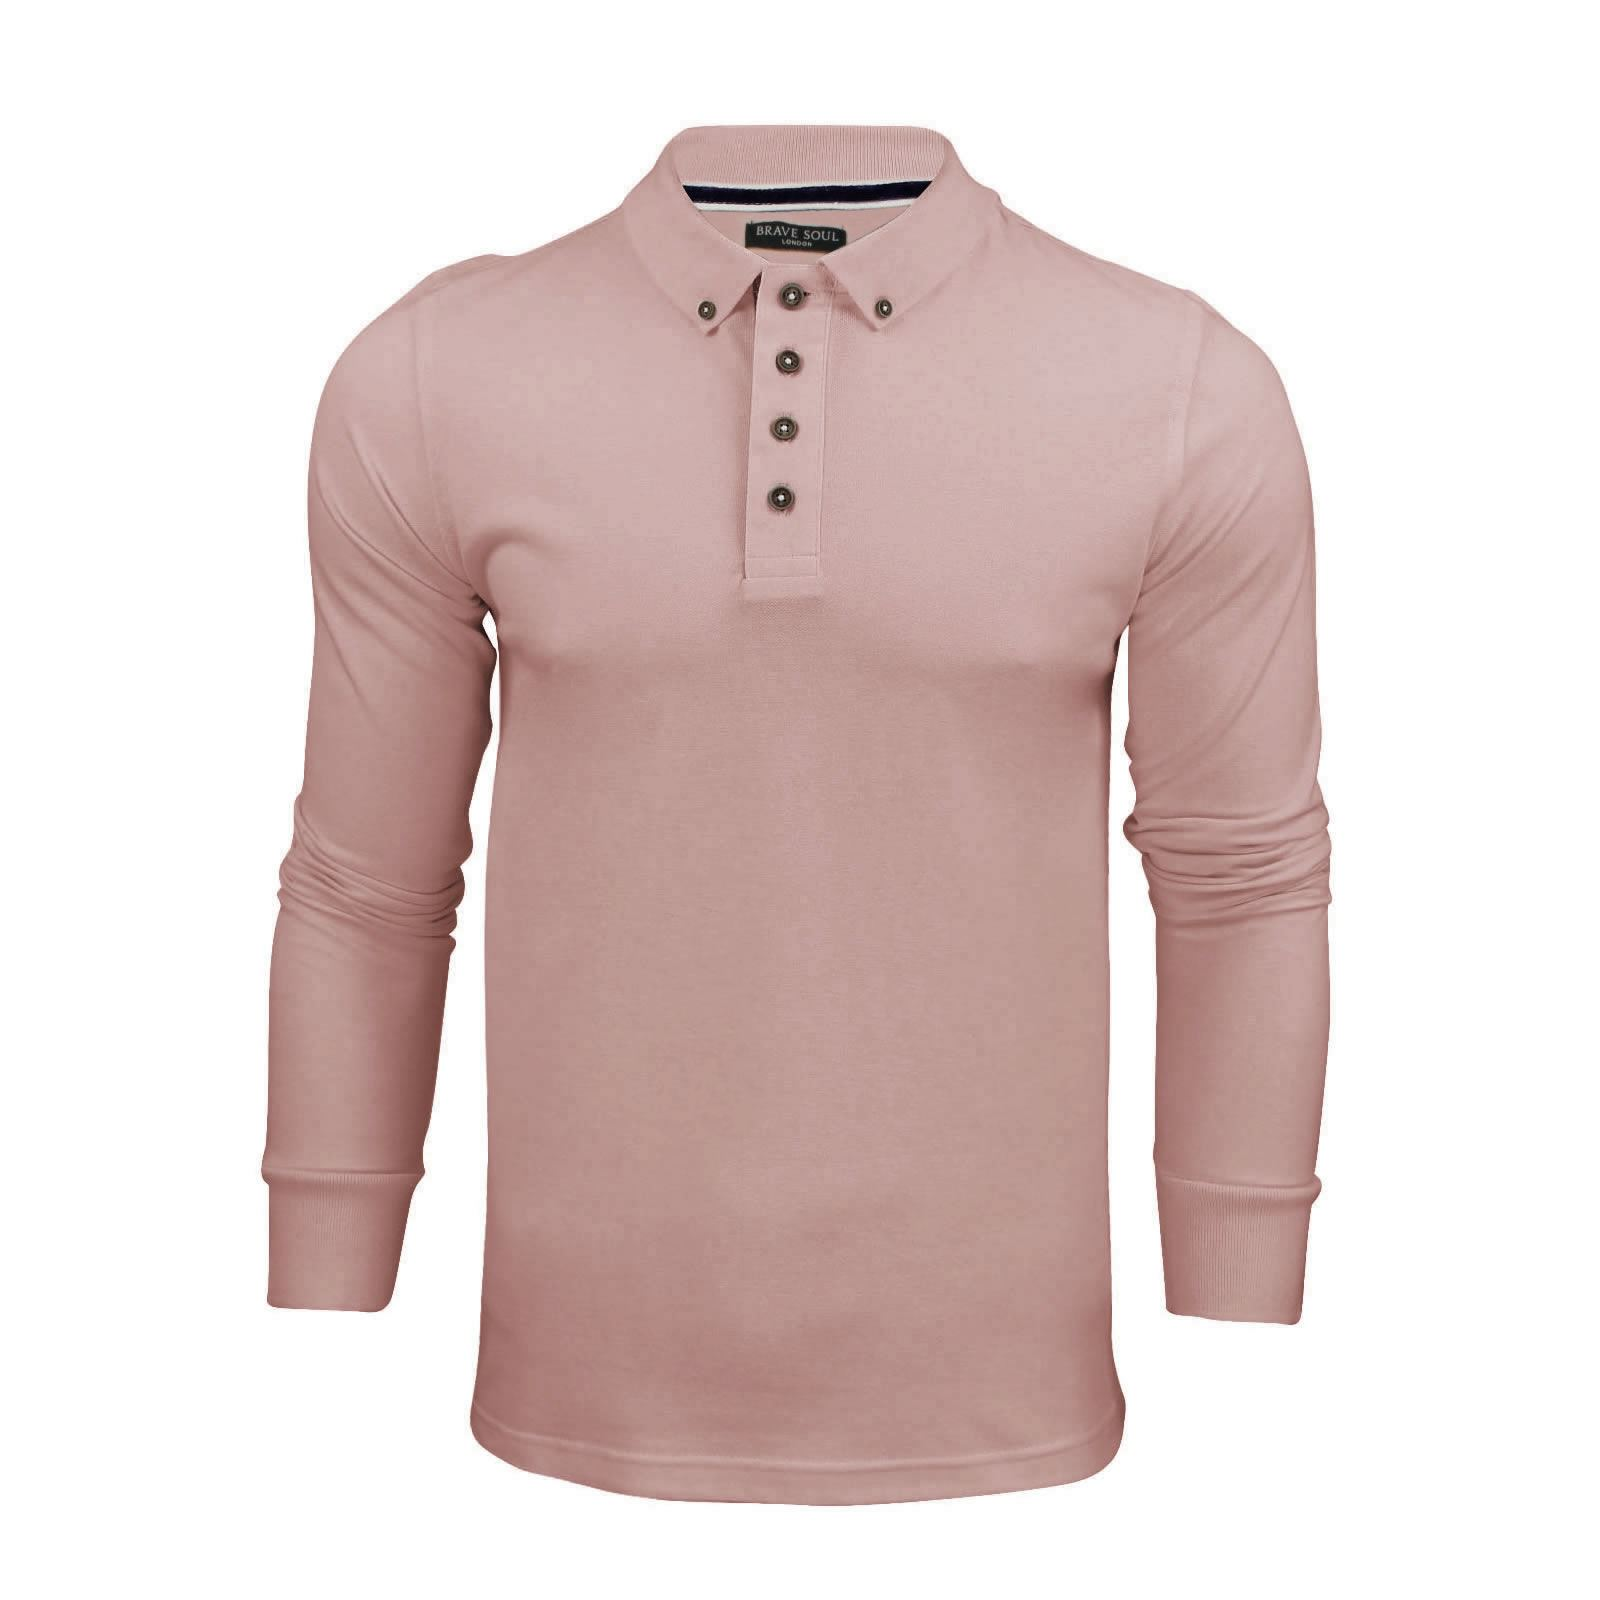 Brave-Soul-Lincoln-Mens-Polo-T-Shirt-Long-Sleeve-Cotton-Pique-Casual-Top thumbnail 22